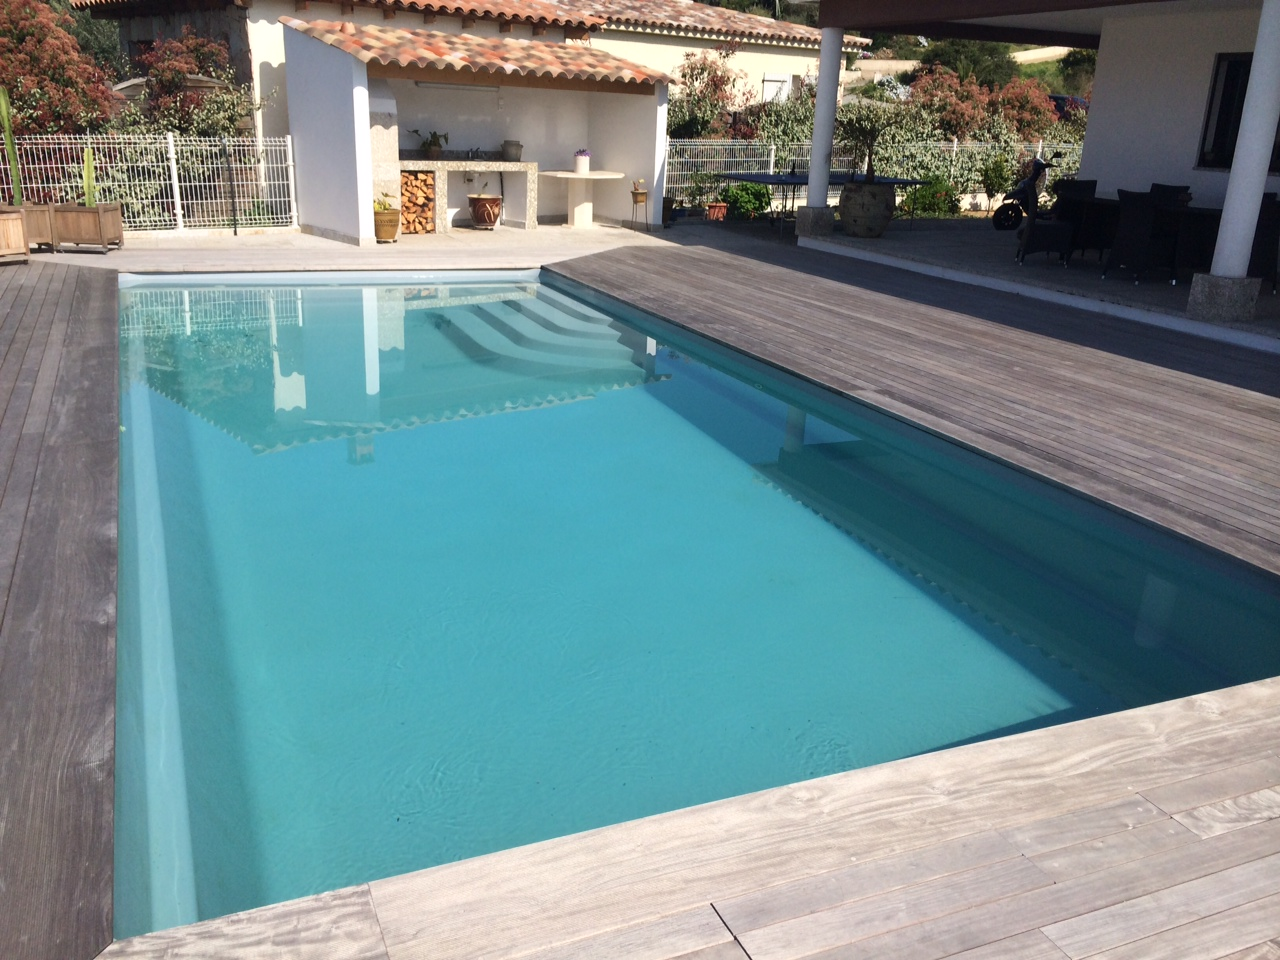 destockage piscine veranda bois prix construction de